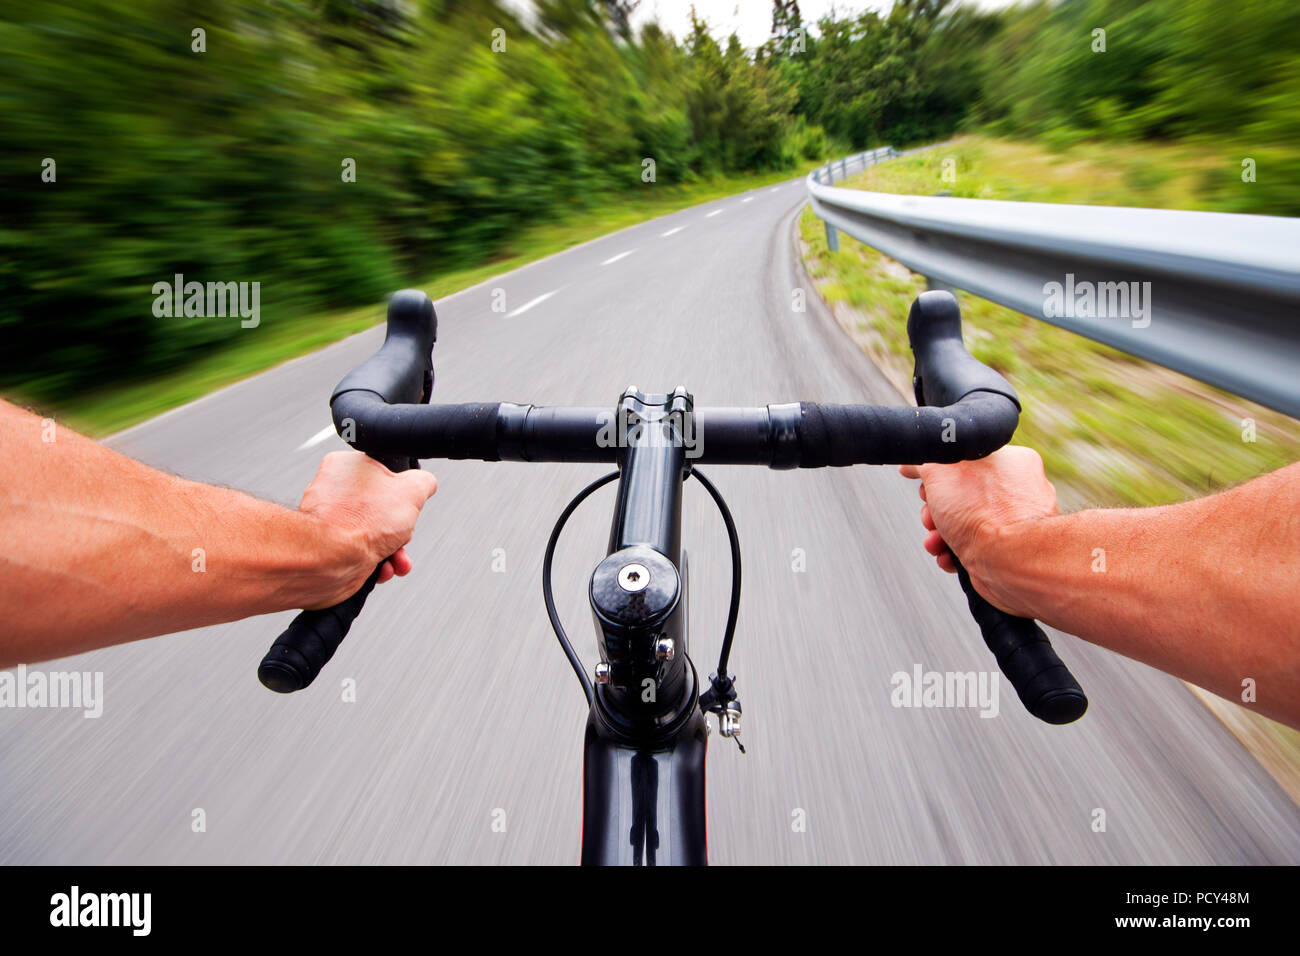 Road cycling wide angle speed shoot - exclusive images - Stock Image